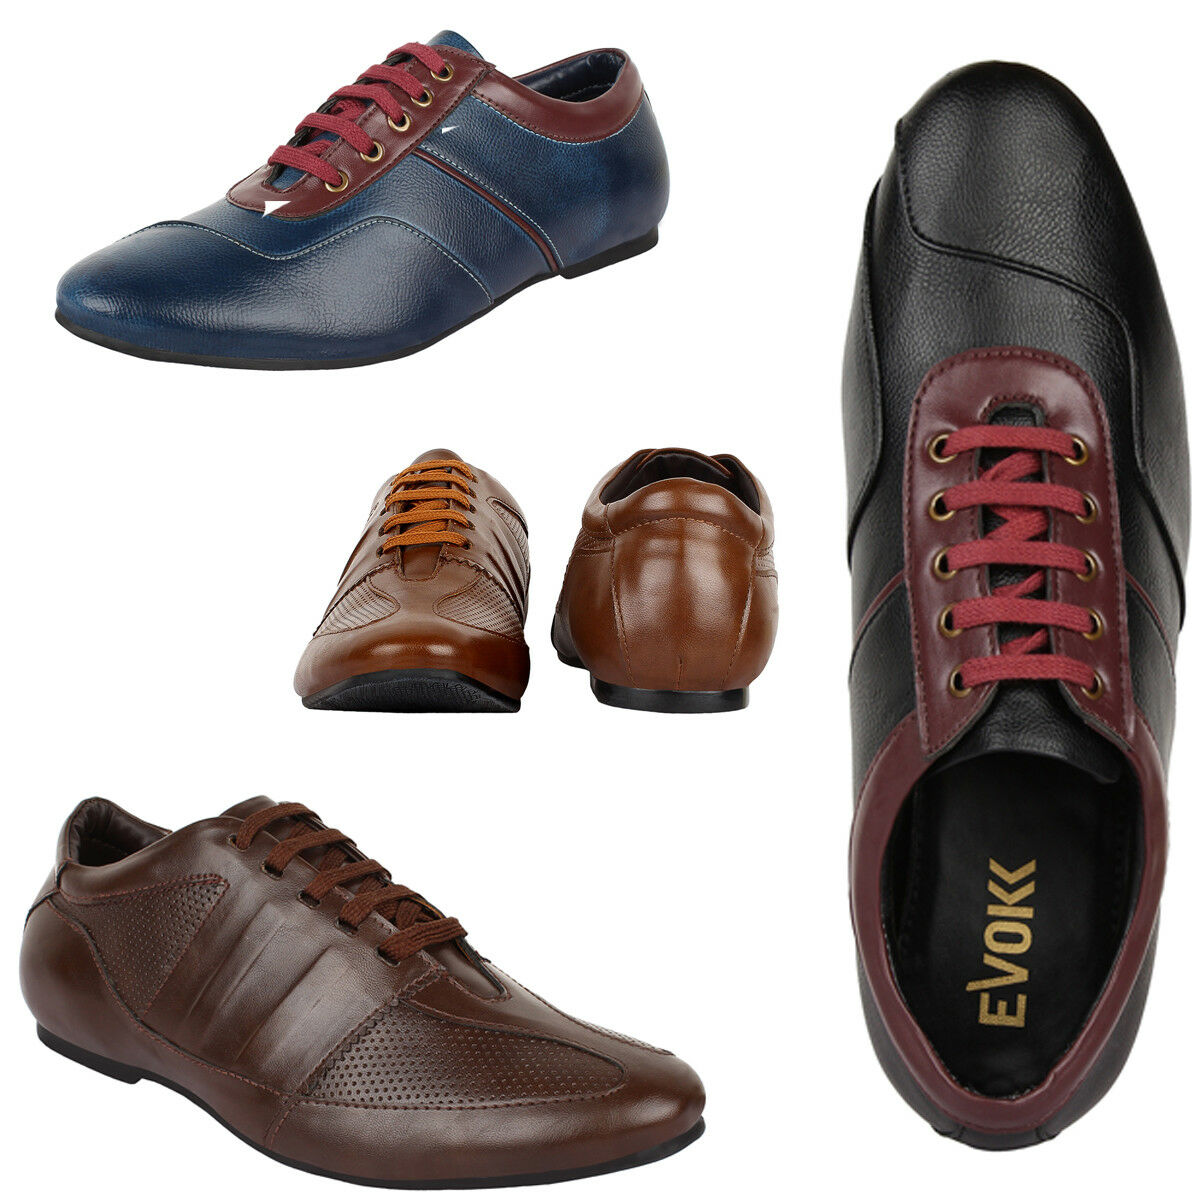 Men's Smart Shoes TURF Style Leather Lase-up Smart Men's Casual Leather Fashion Shoe 328835